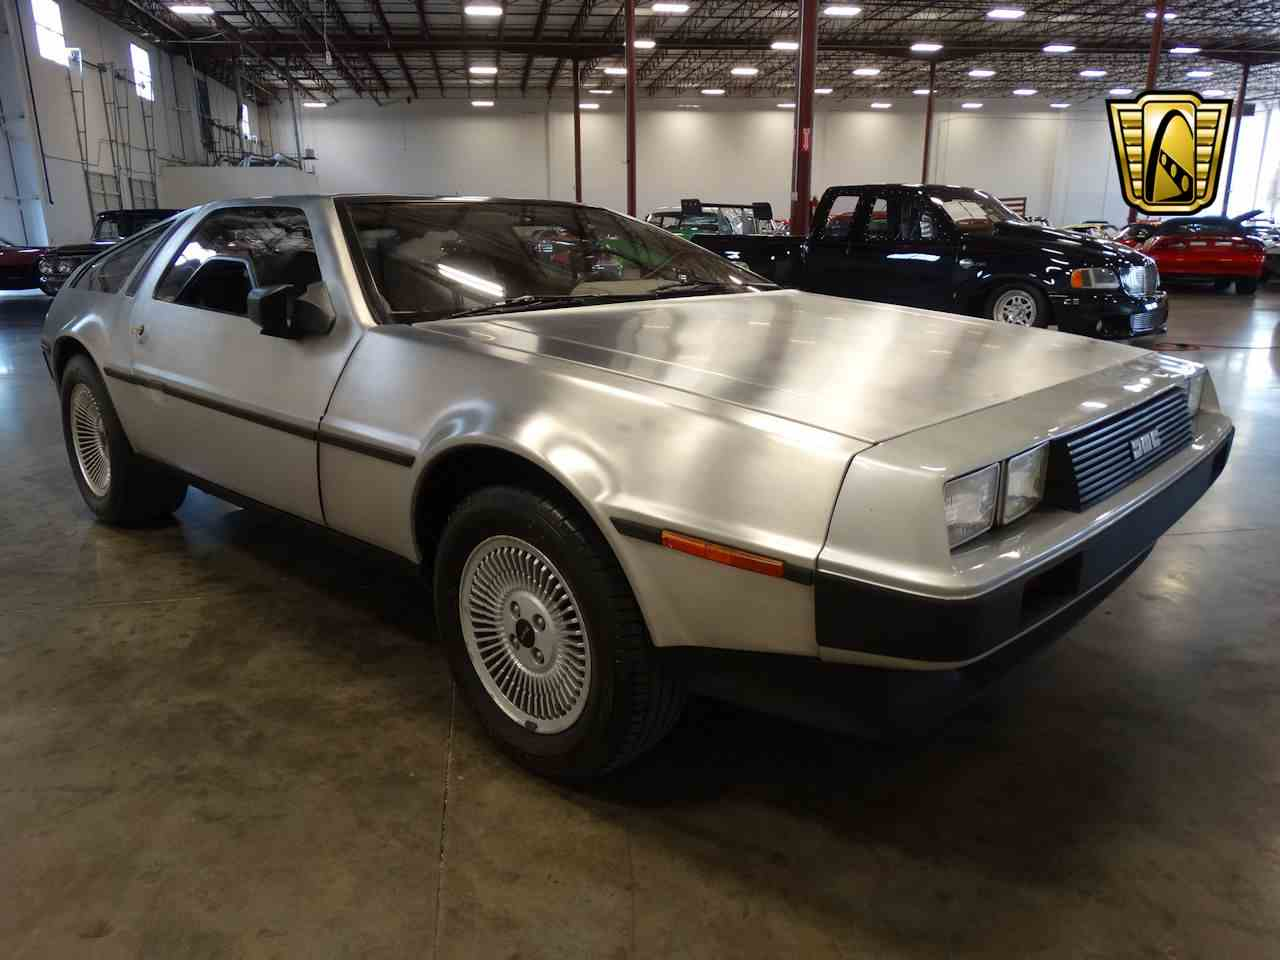 Large Picture of 1981 DMC-12 located in La Vergne Tennessee - $29,995.00 Offered by Gateway Classic Cars - Nashville - M2L4